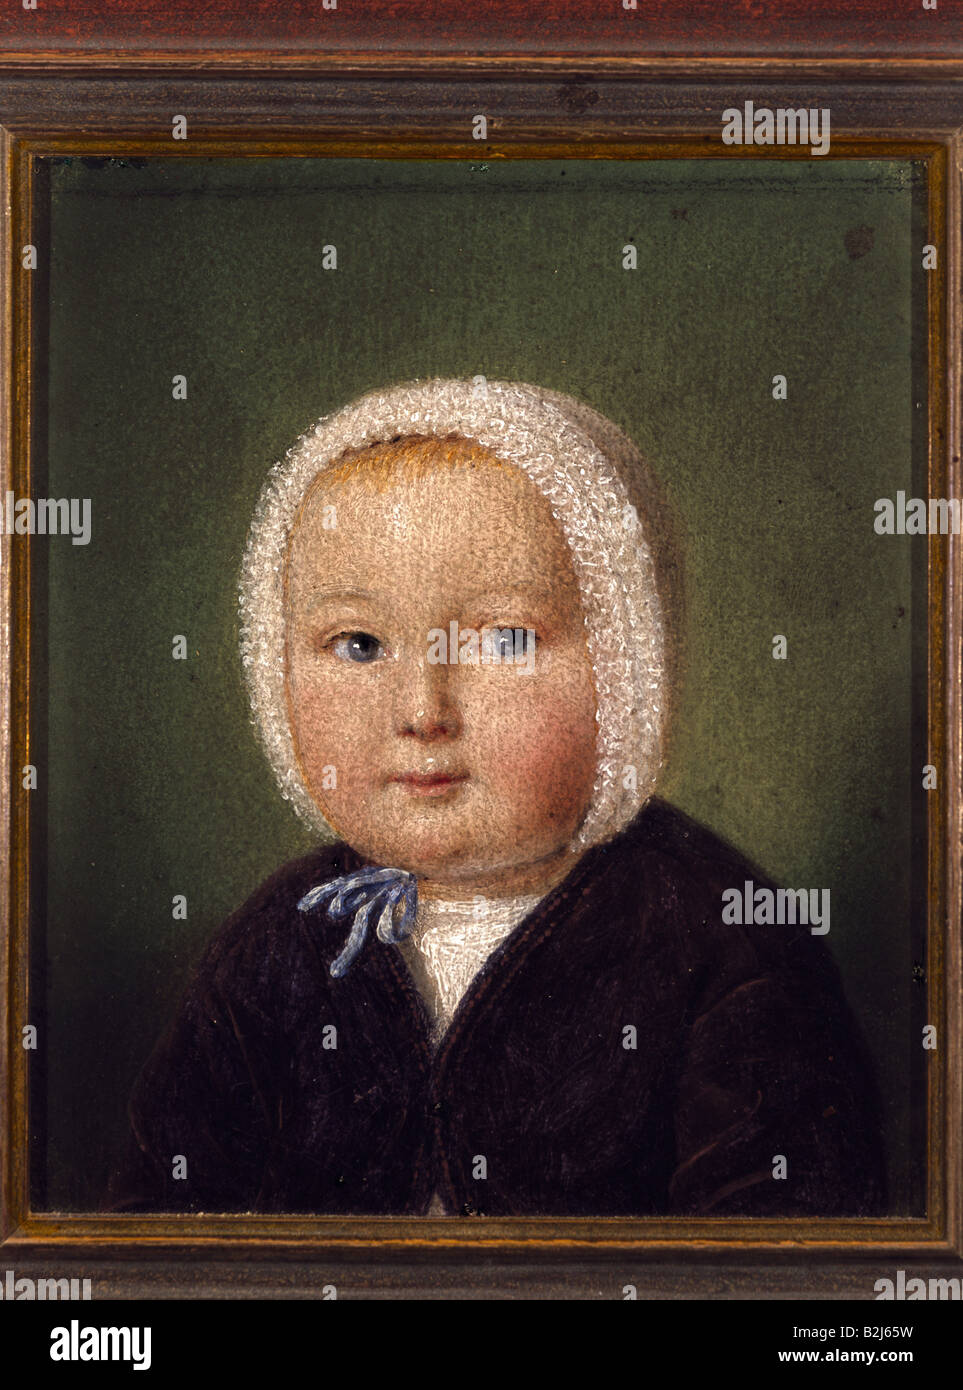 child / children, babies, 'Marie Breuer from Juelich', portrait, 11 cm x 13.3 cm, Germany, circa 1840, private - Stock Image